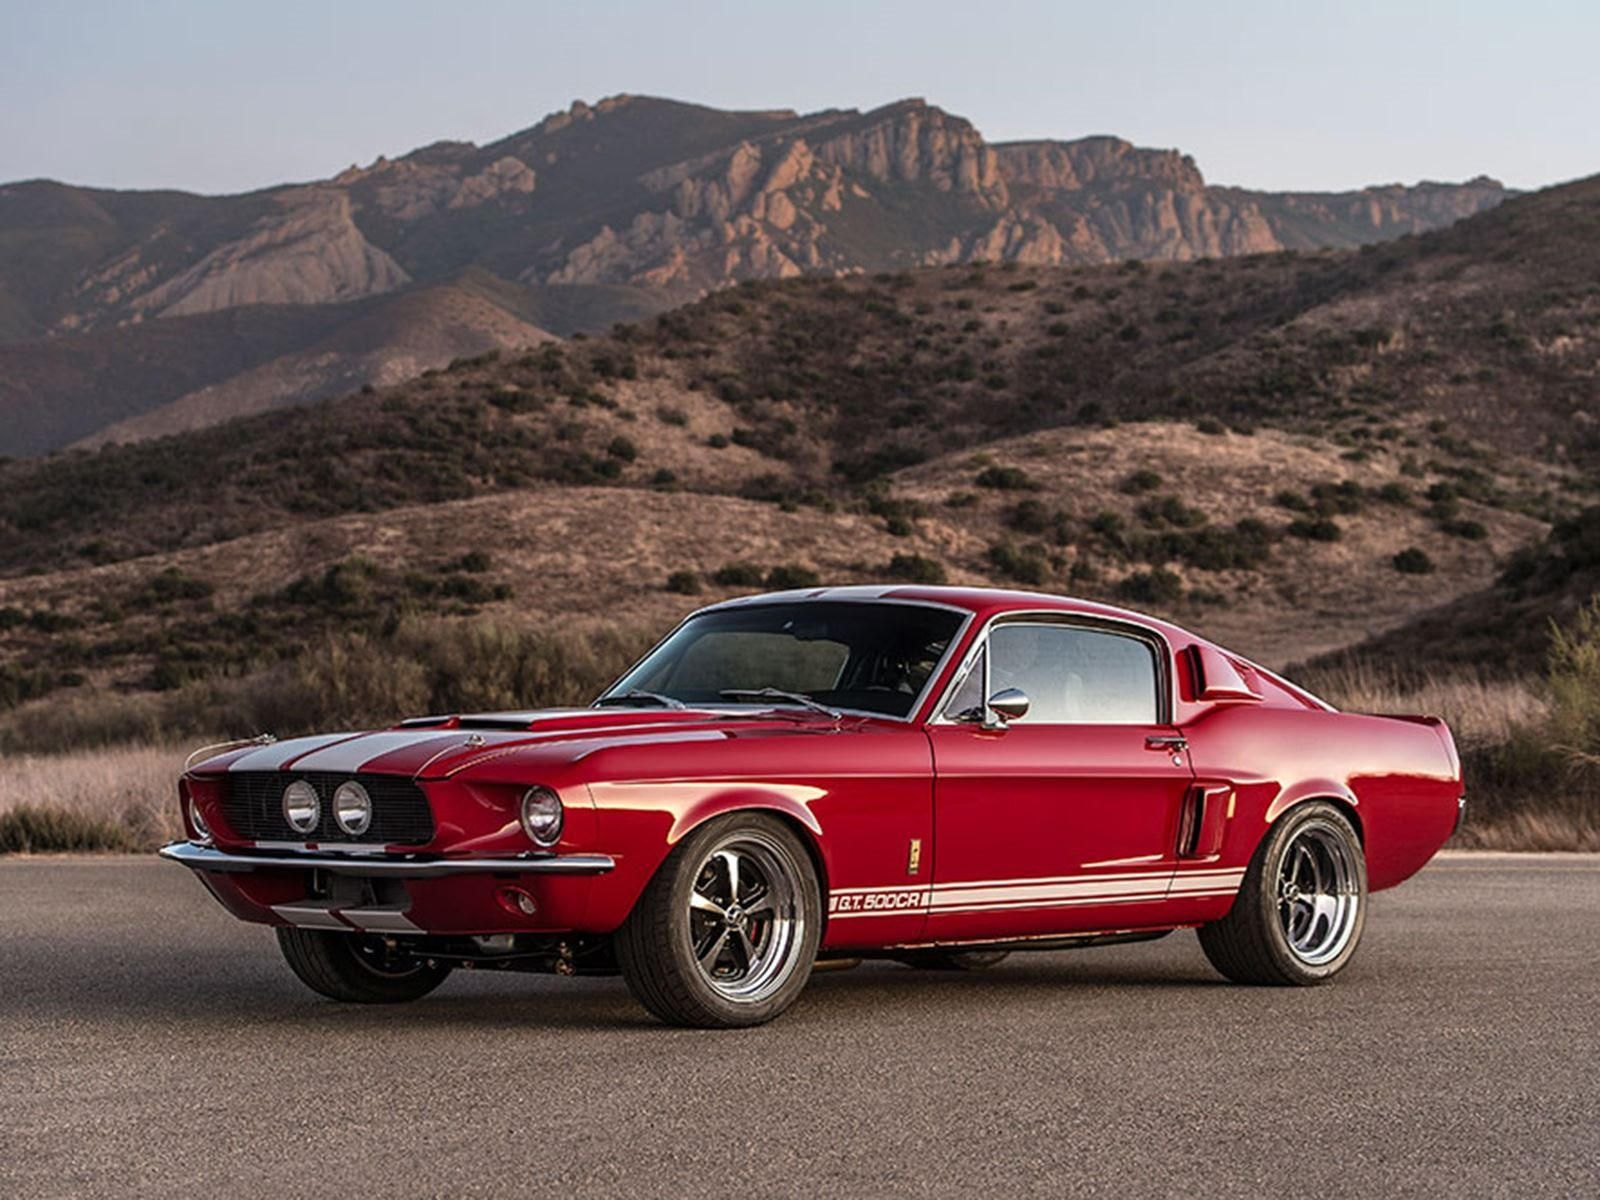 Ford Mustang Boss 429 Is Back In Production With 815 Hp Behold The First Brand New 1969 Ford Mustang Ford Mustang Boss 429 Ford Mustang Boss Mustang Fastback